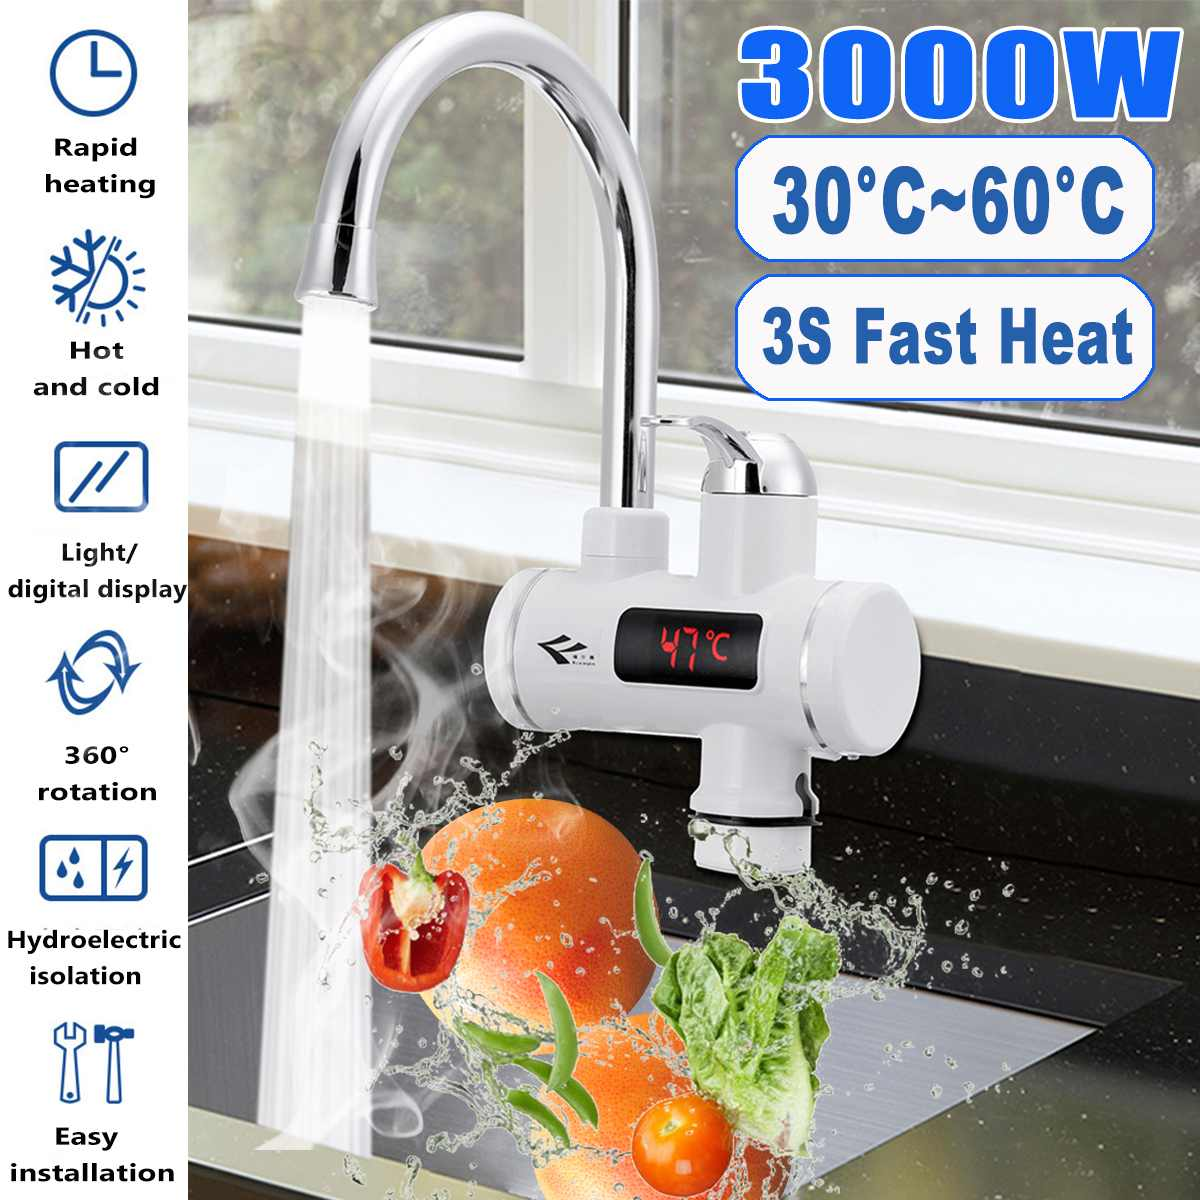 3000W 220V Temperature Display Instant Hot Water Tap Tankless Electric Faucet Kitchen Instant Hot Faucet Water Heater Water Heat